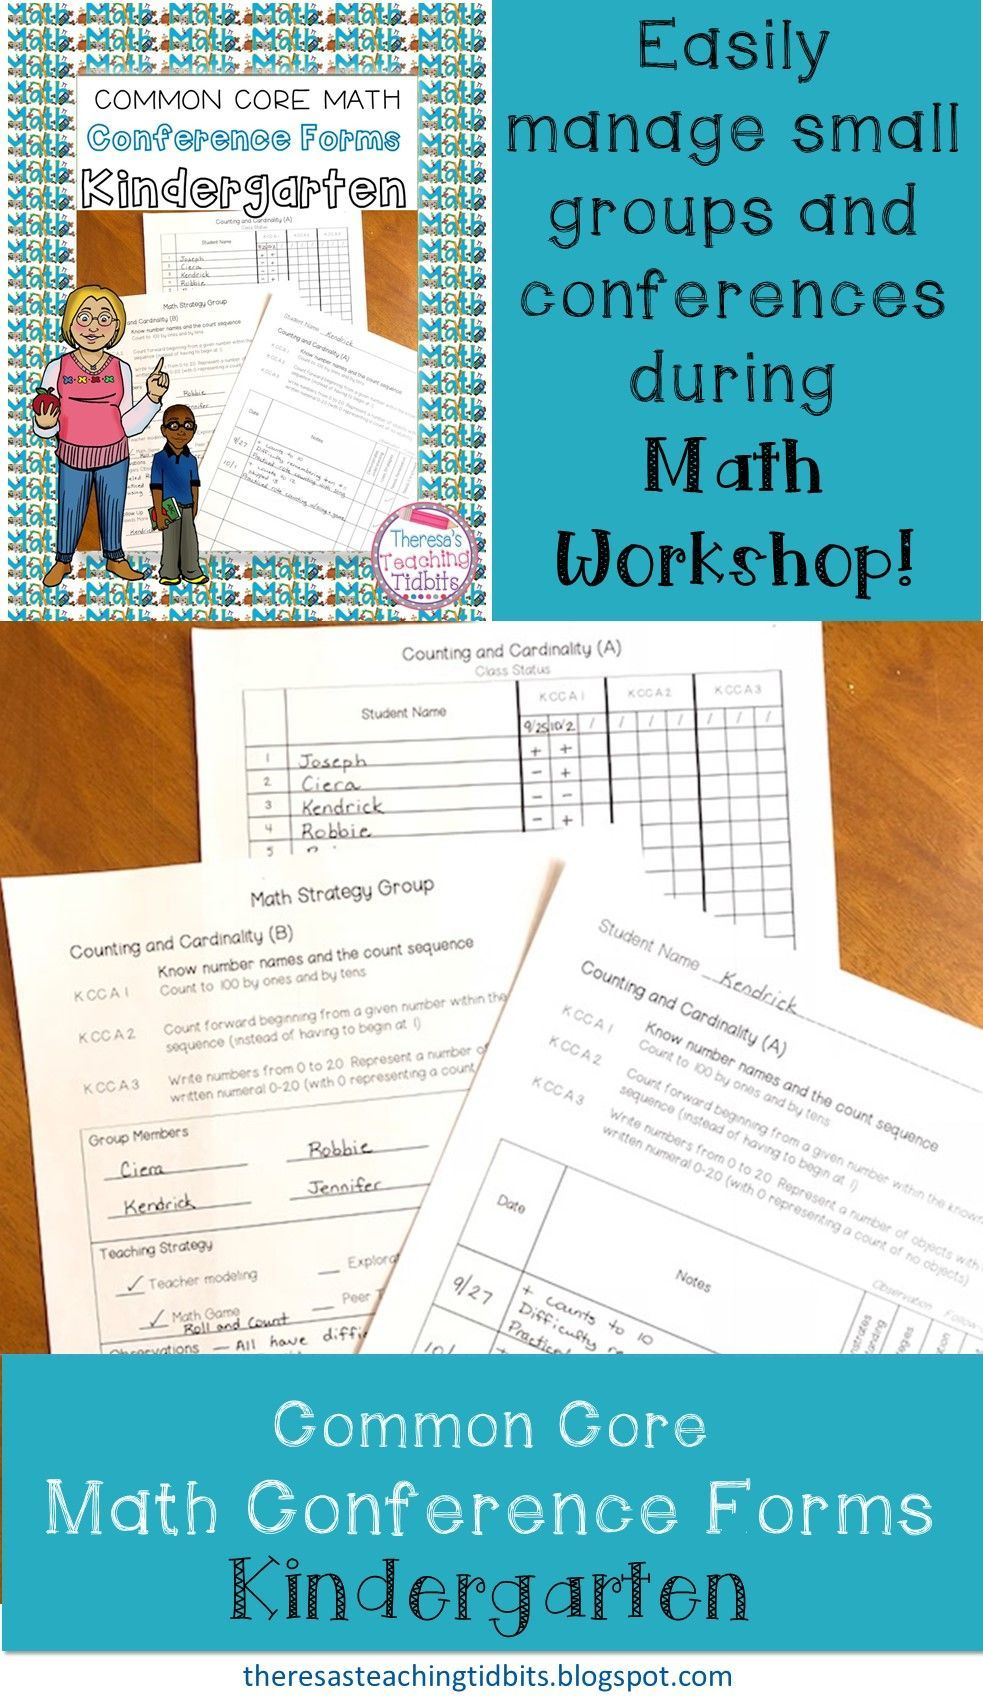 These math conference forms for kindergarten teachers will help you ...